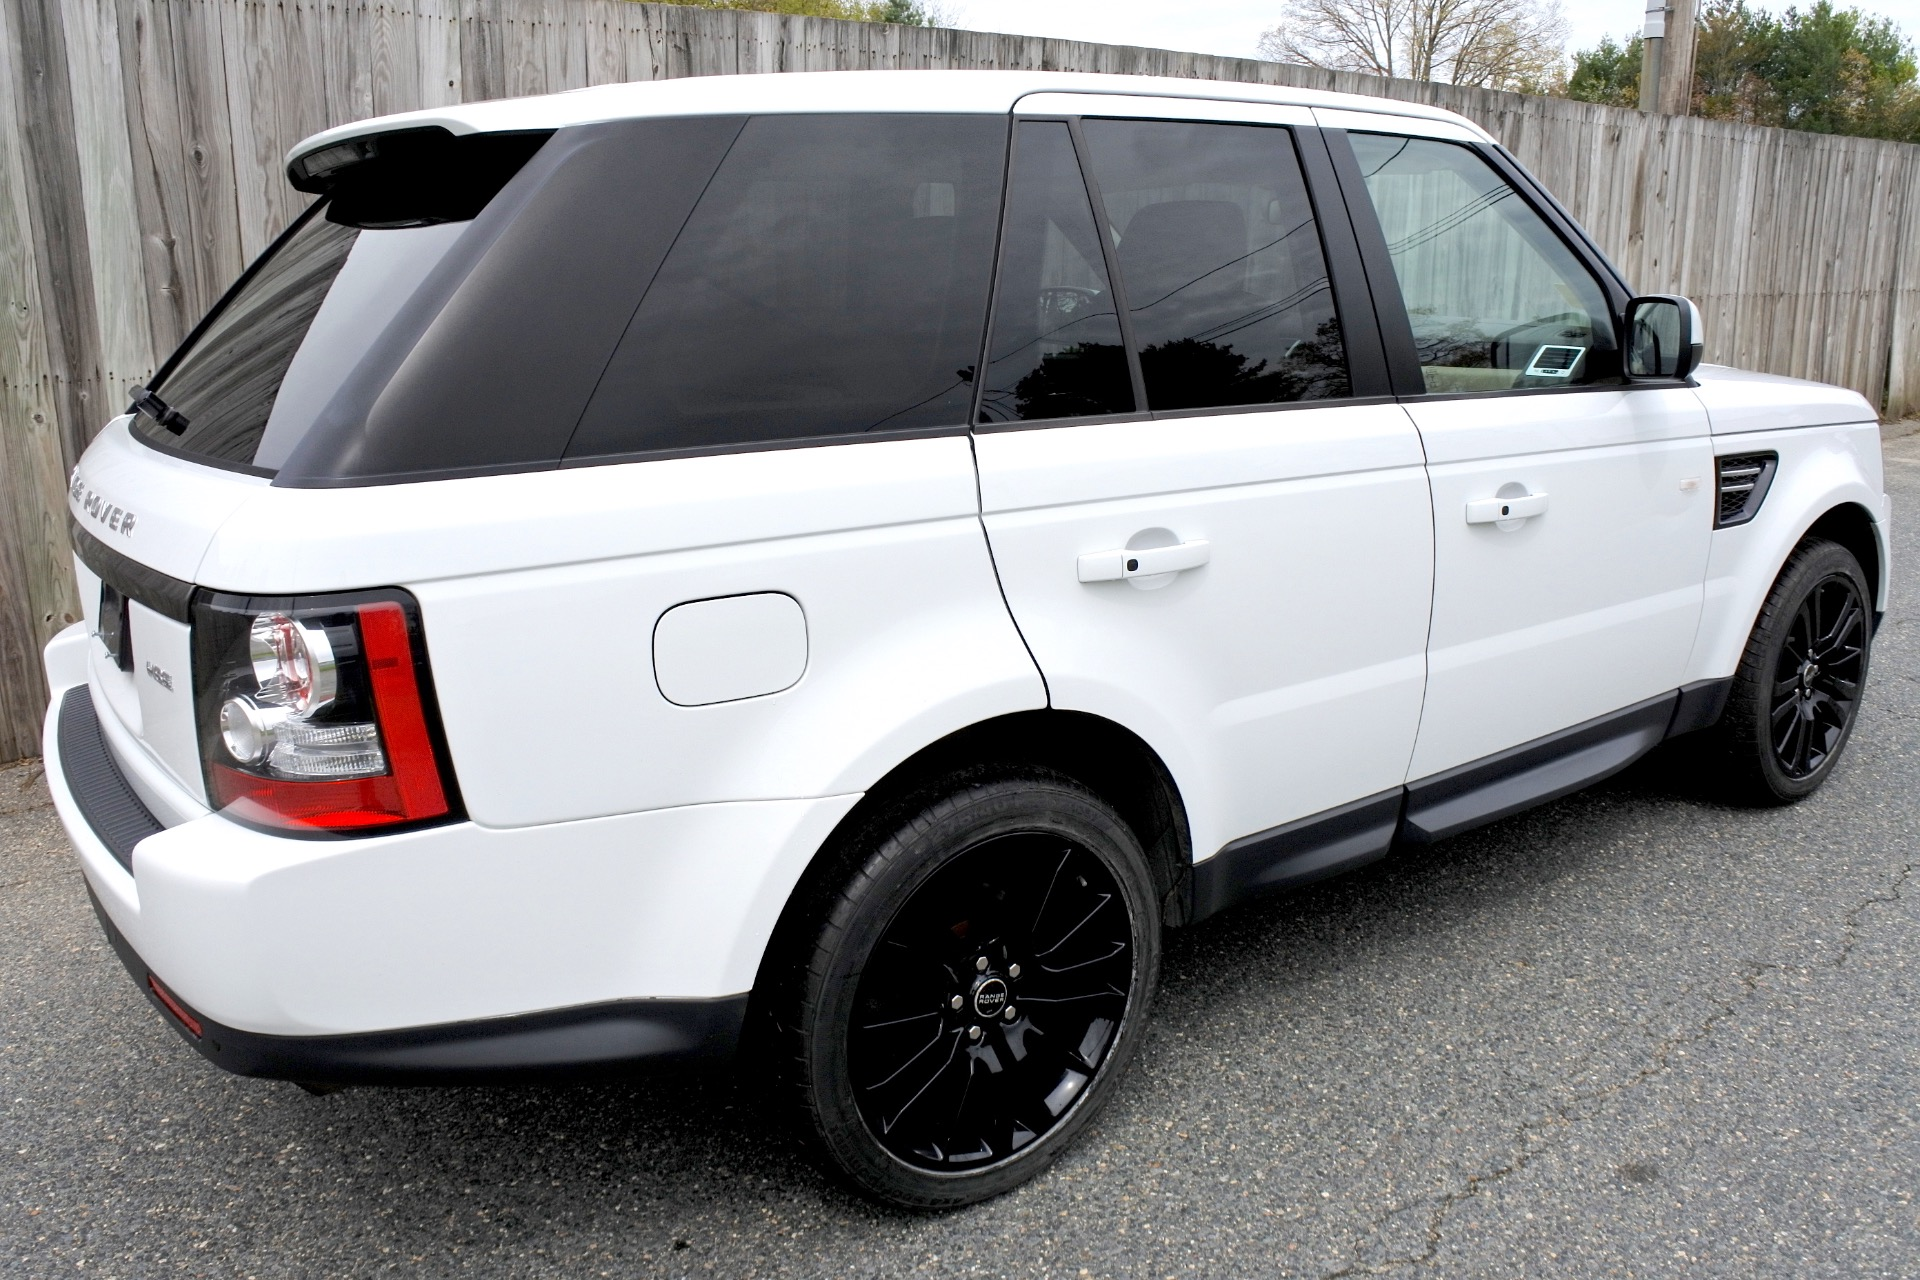 Used 2013 Land Rover Range Rover Sport HSE Used 2013 Land Rover Range Rover Sport HSE for sale  at Metro West Motorcars LLC in Shrewsbury MA 5